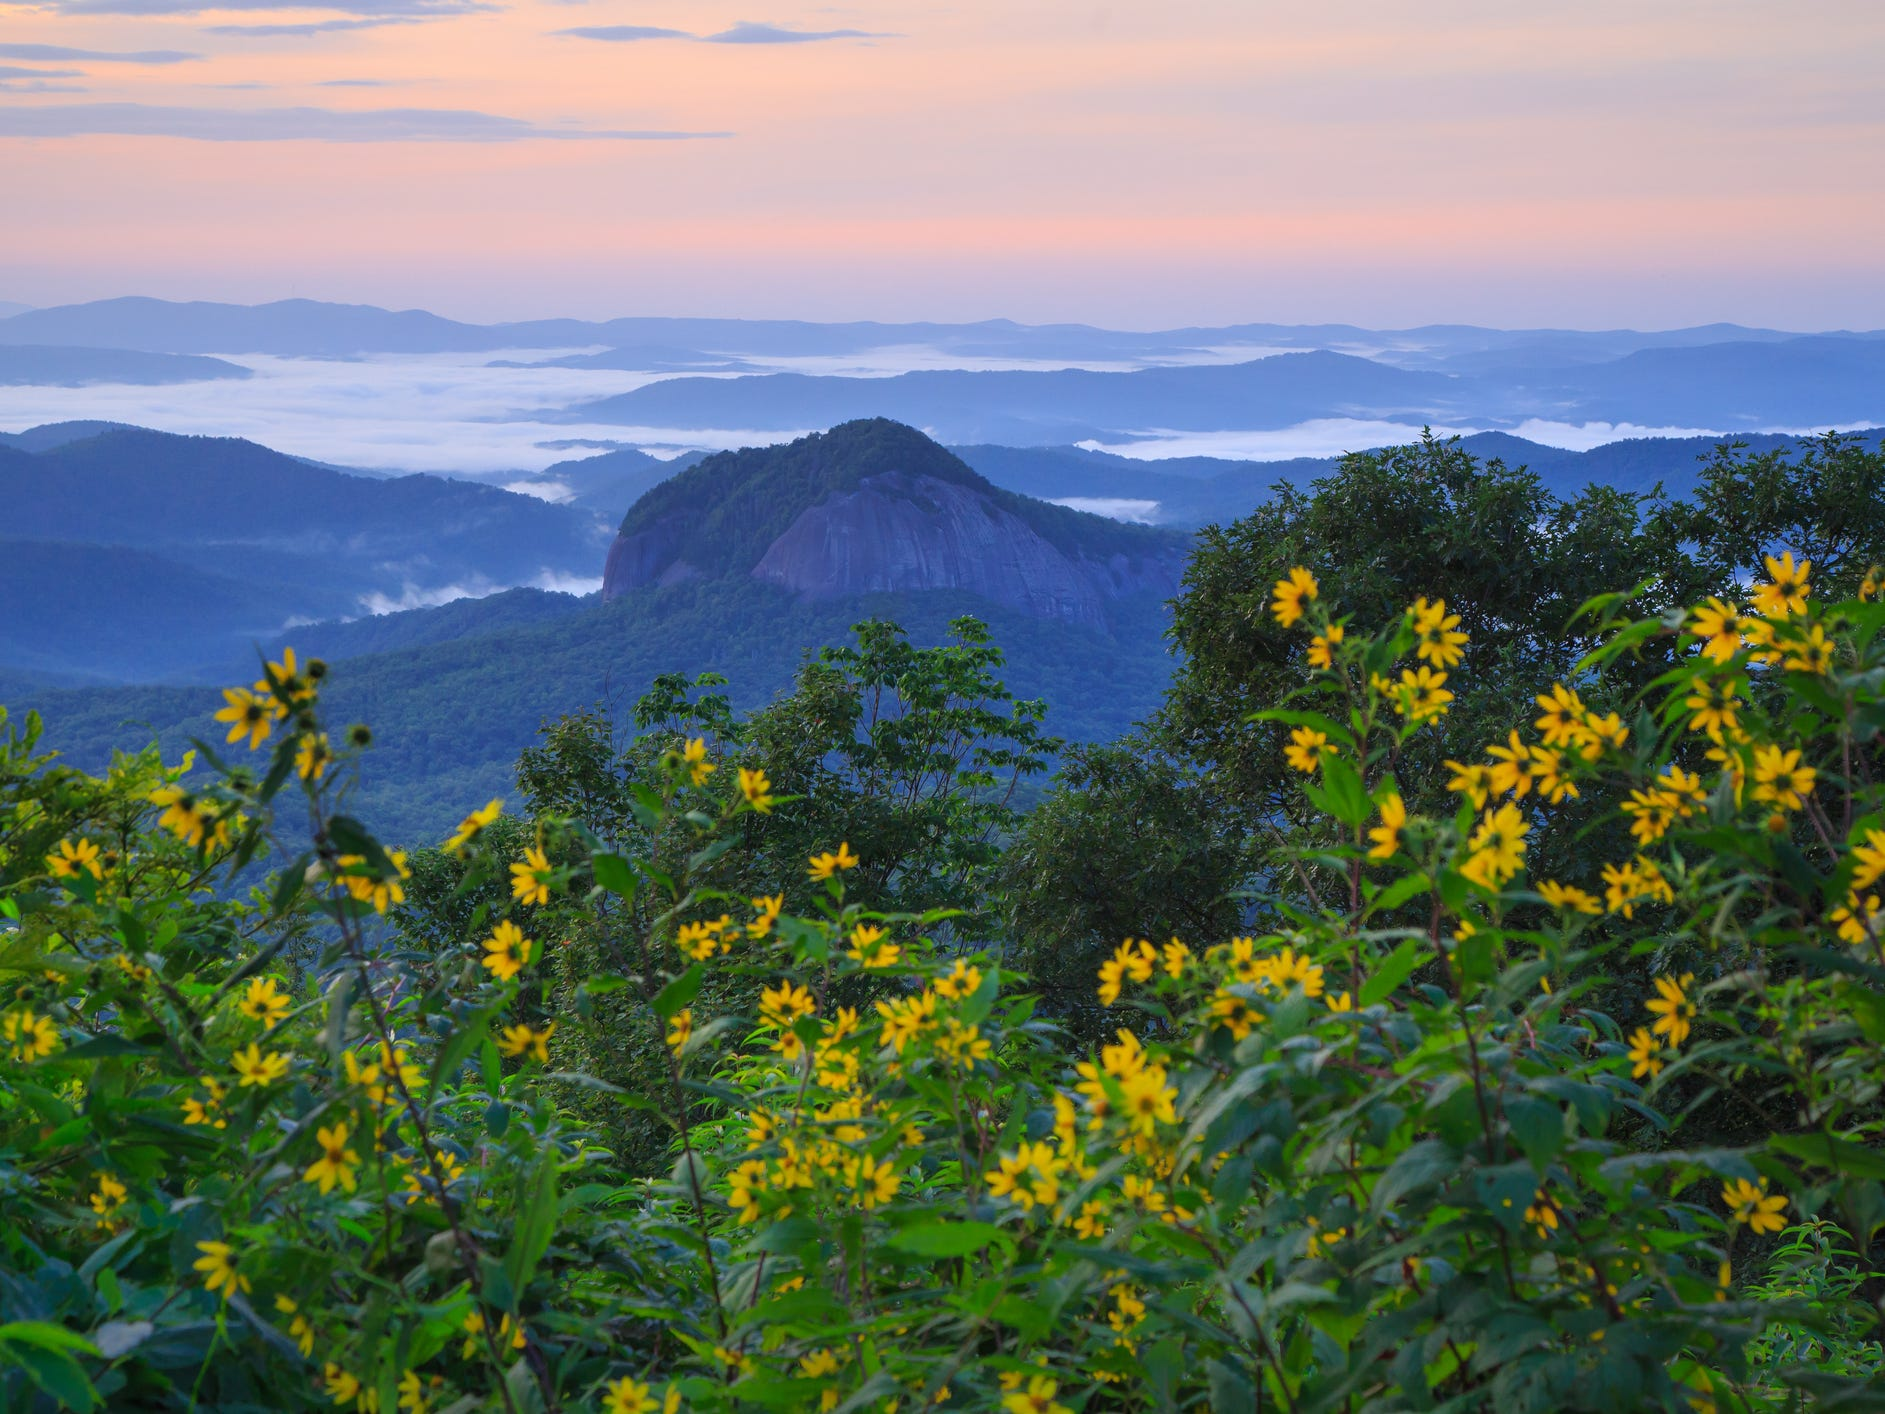 A view along the Blue Ridge Parkway.